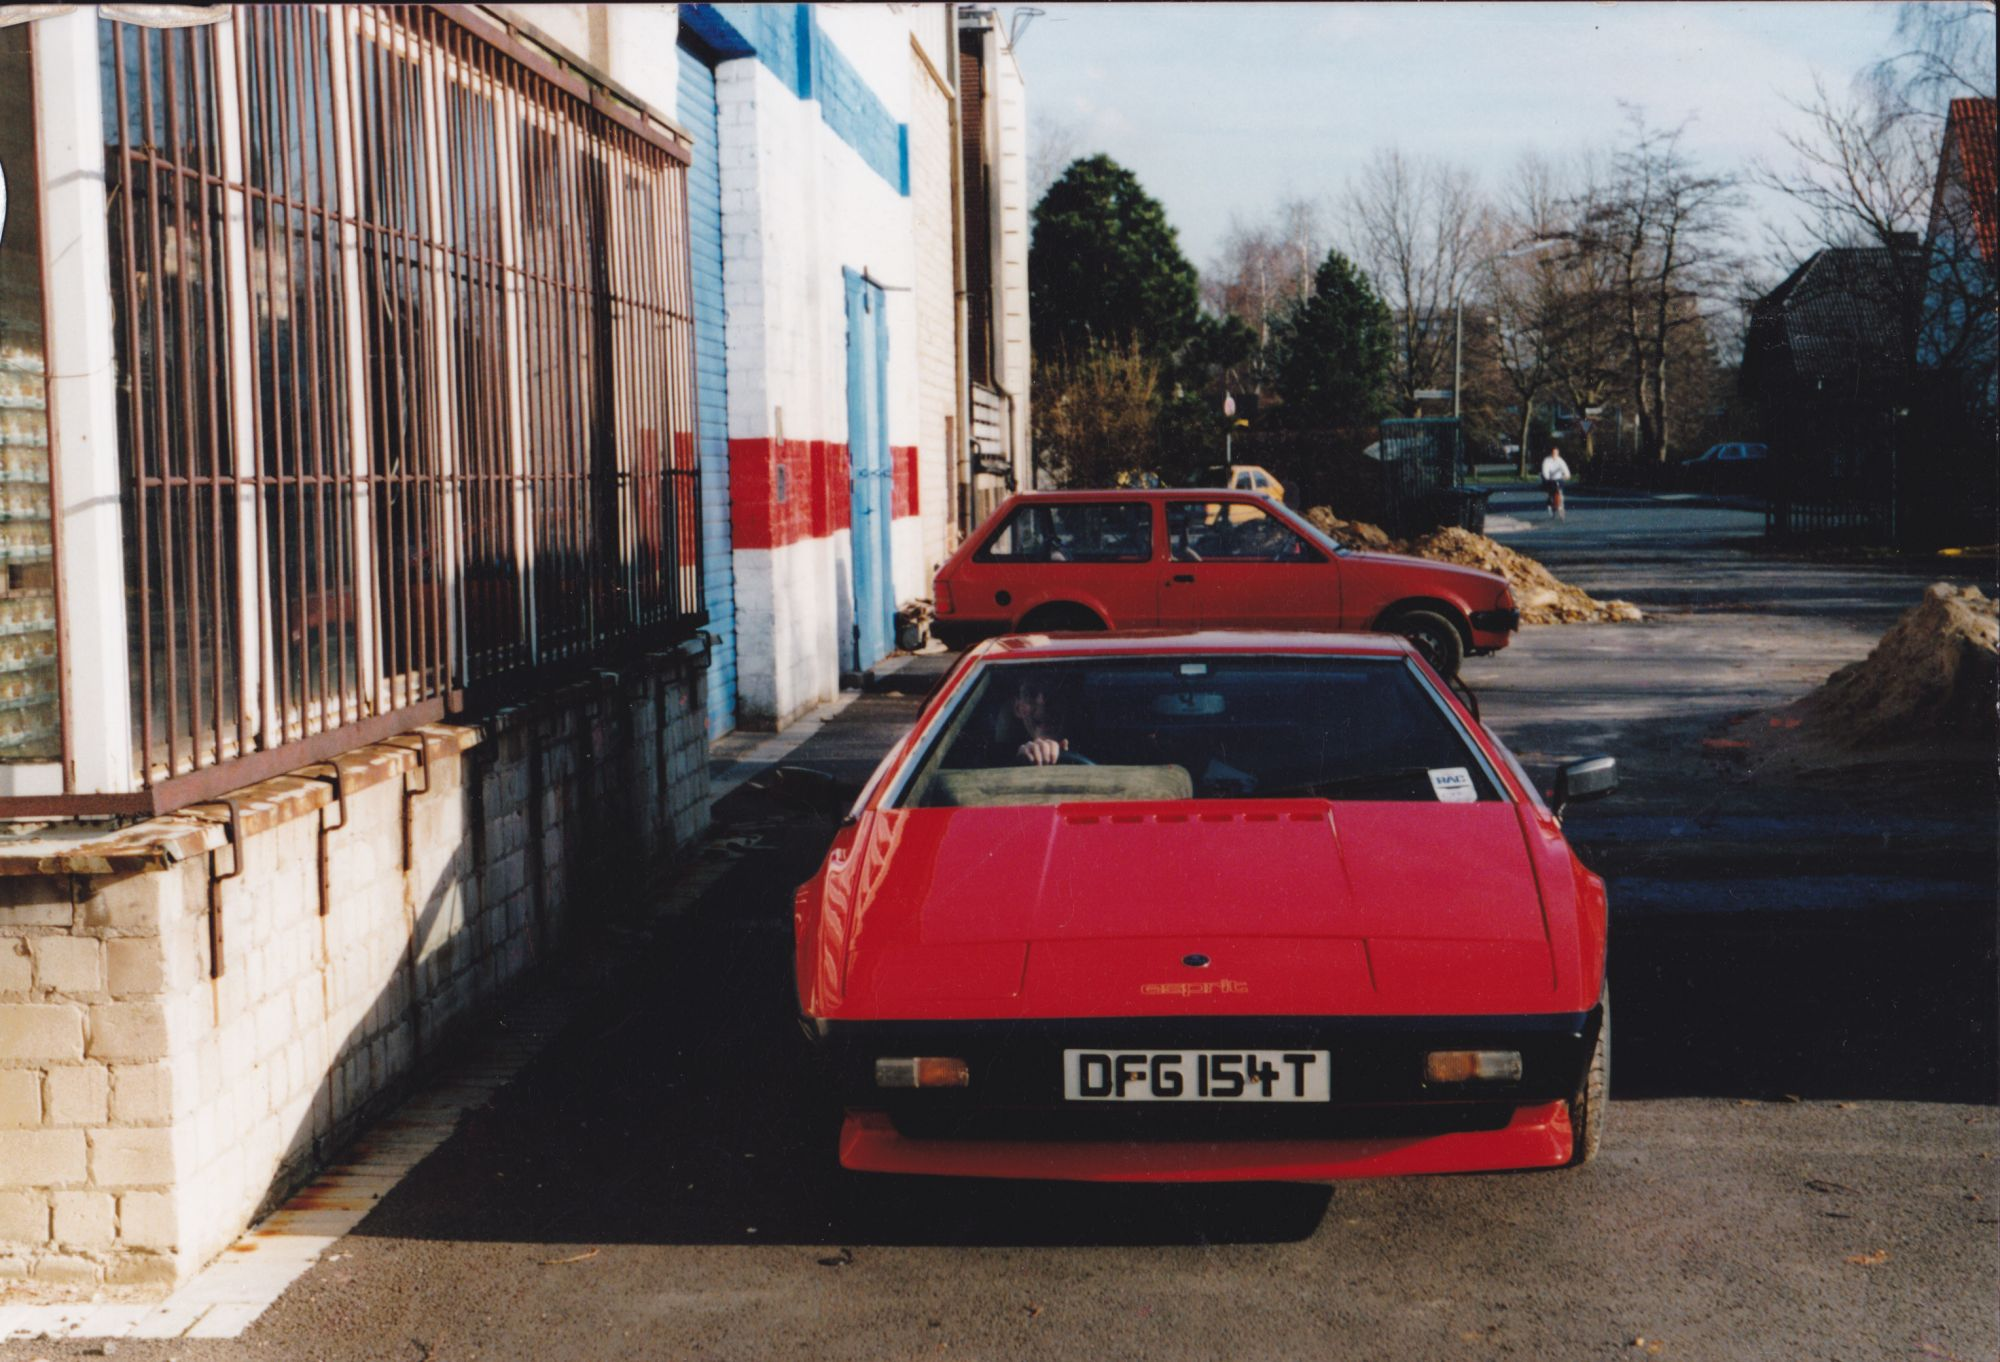 My old Esprit S2 1978